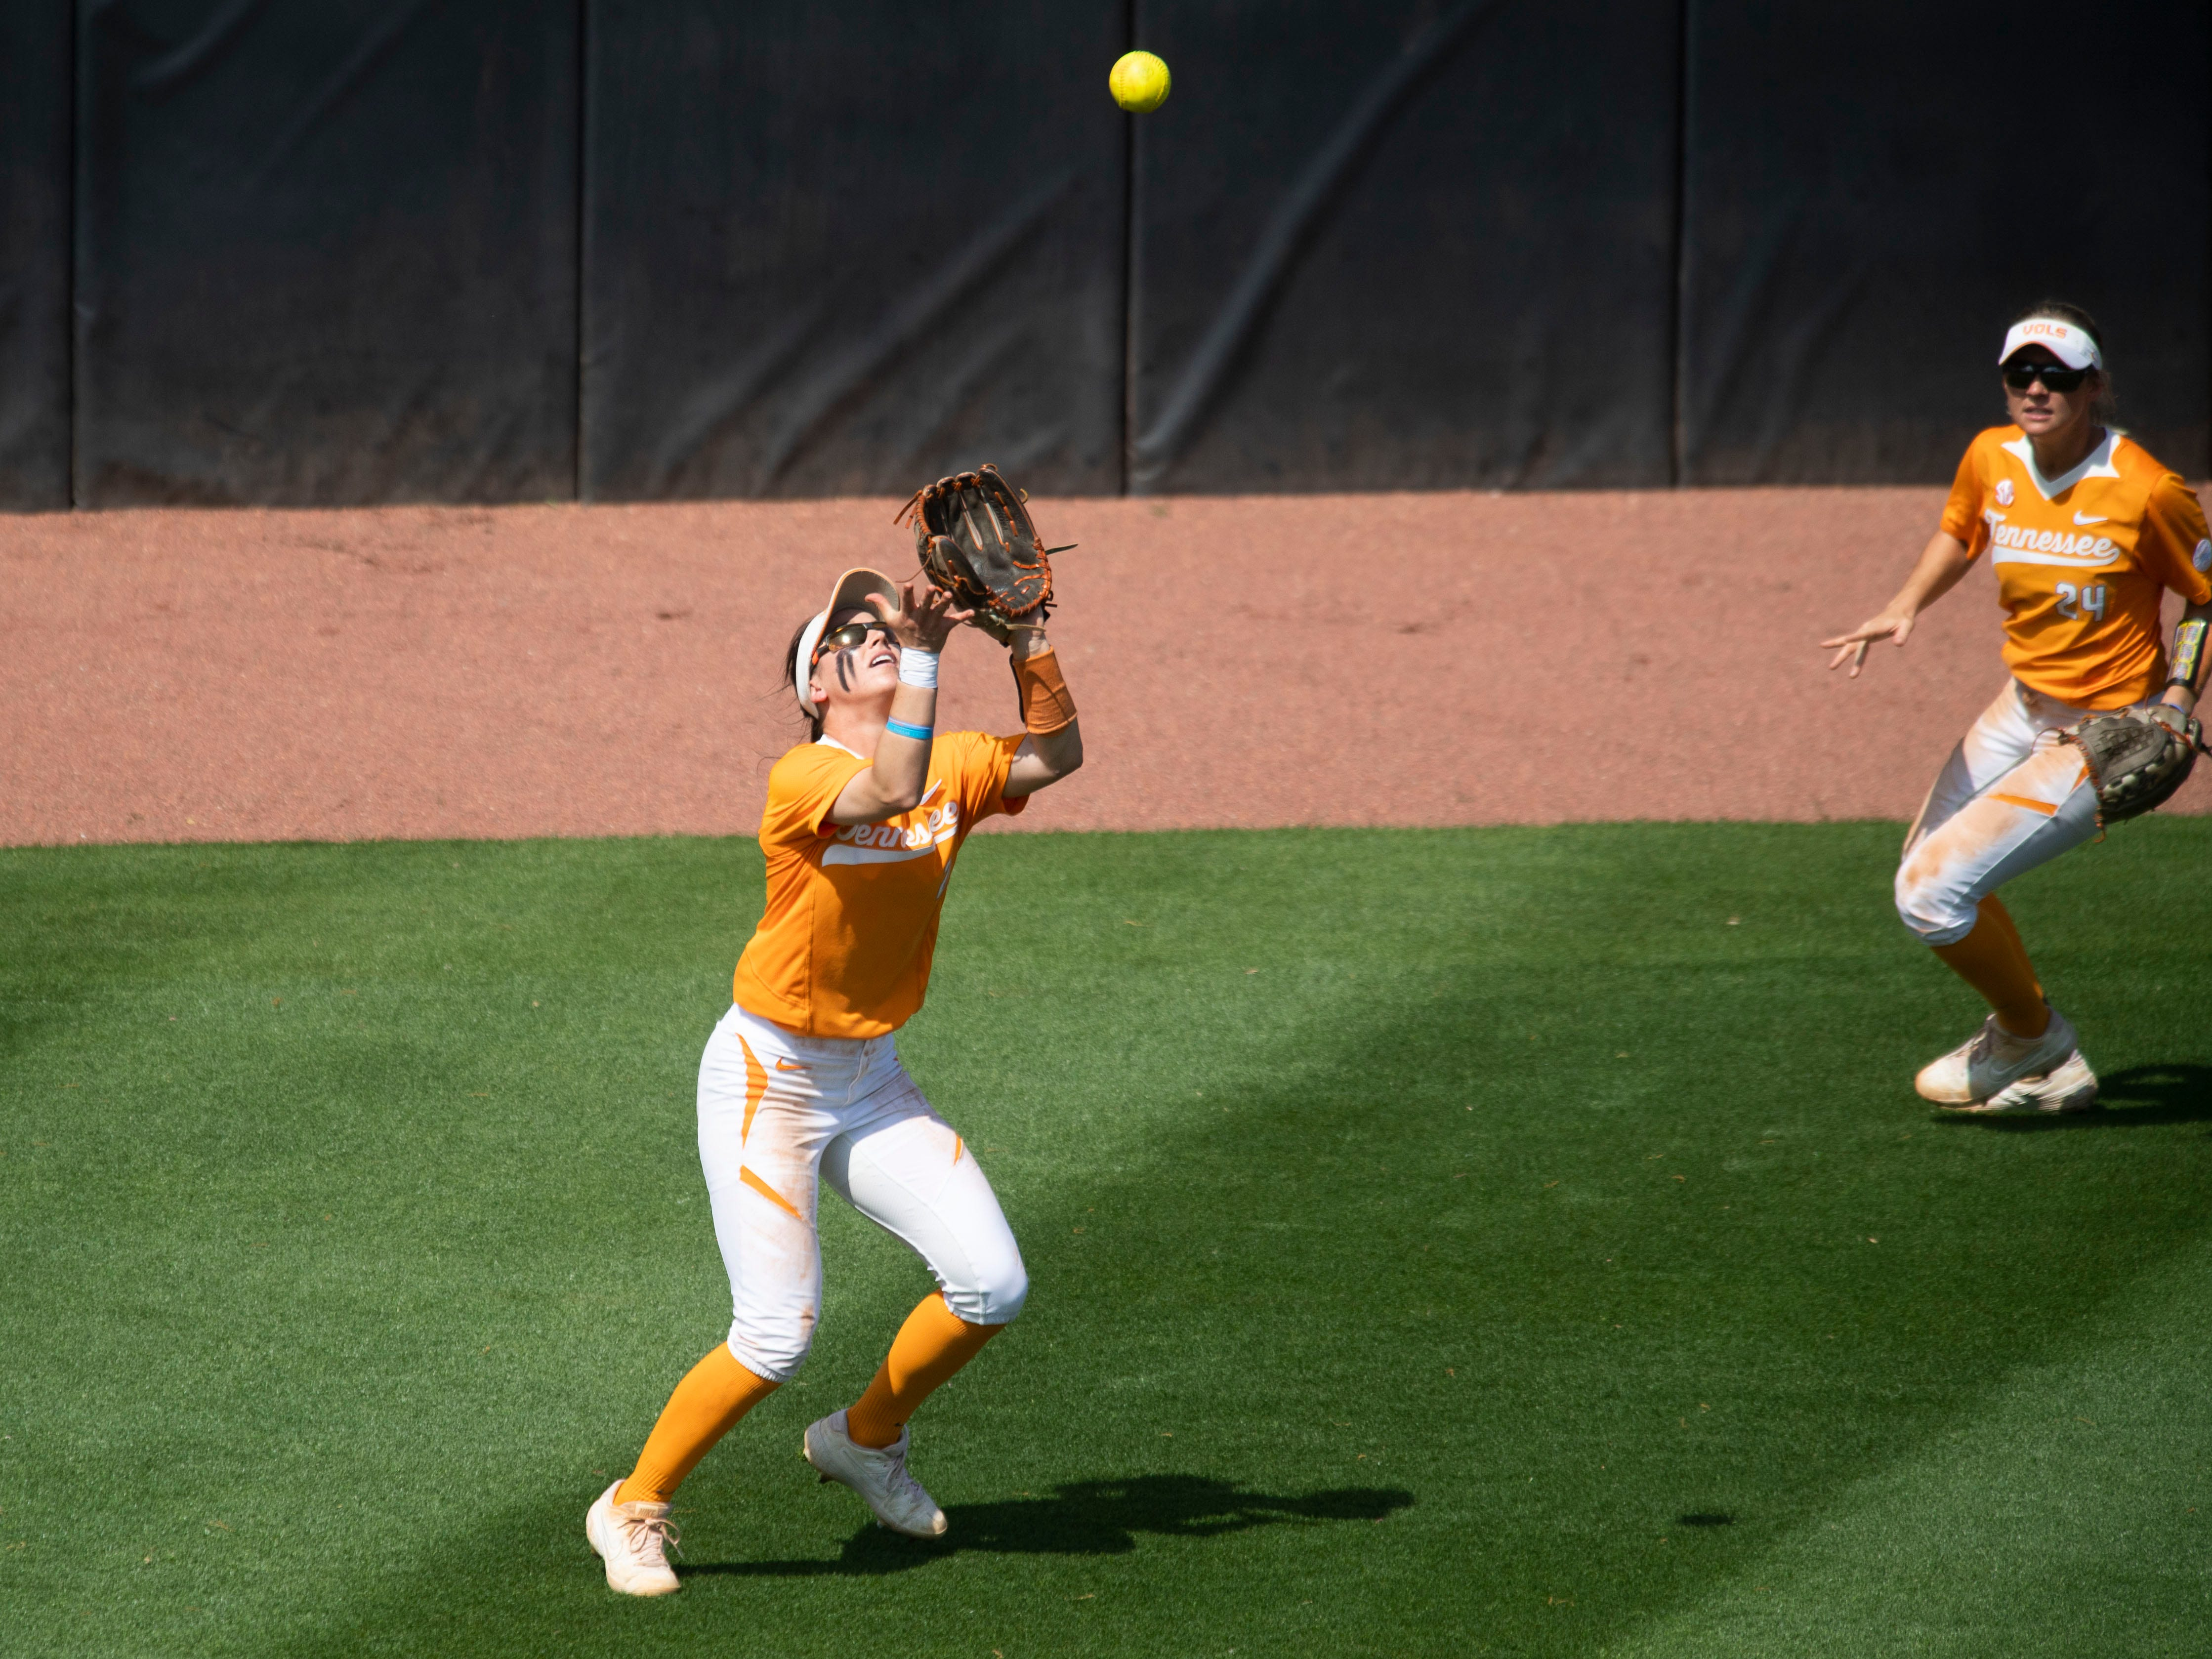 Tennessee's Jenna Holcomb (2) catches a fly ball in the game against Mississippi State at Sherri Parker Lee Stadium on Sunday, April 14, 2019.